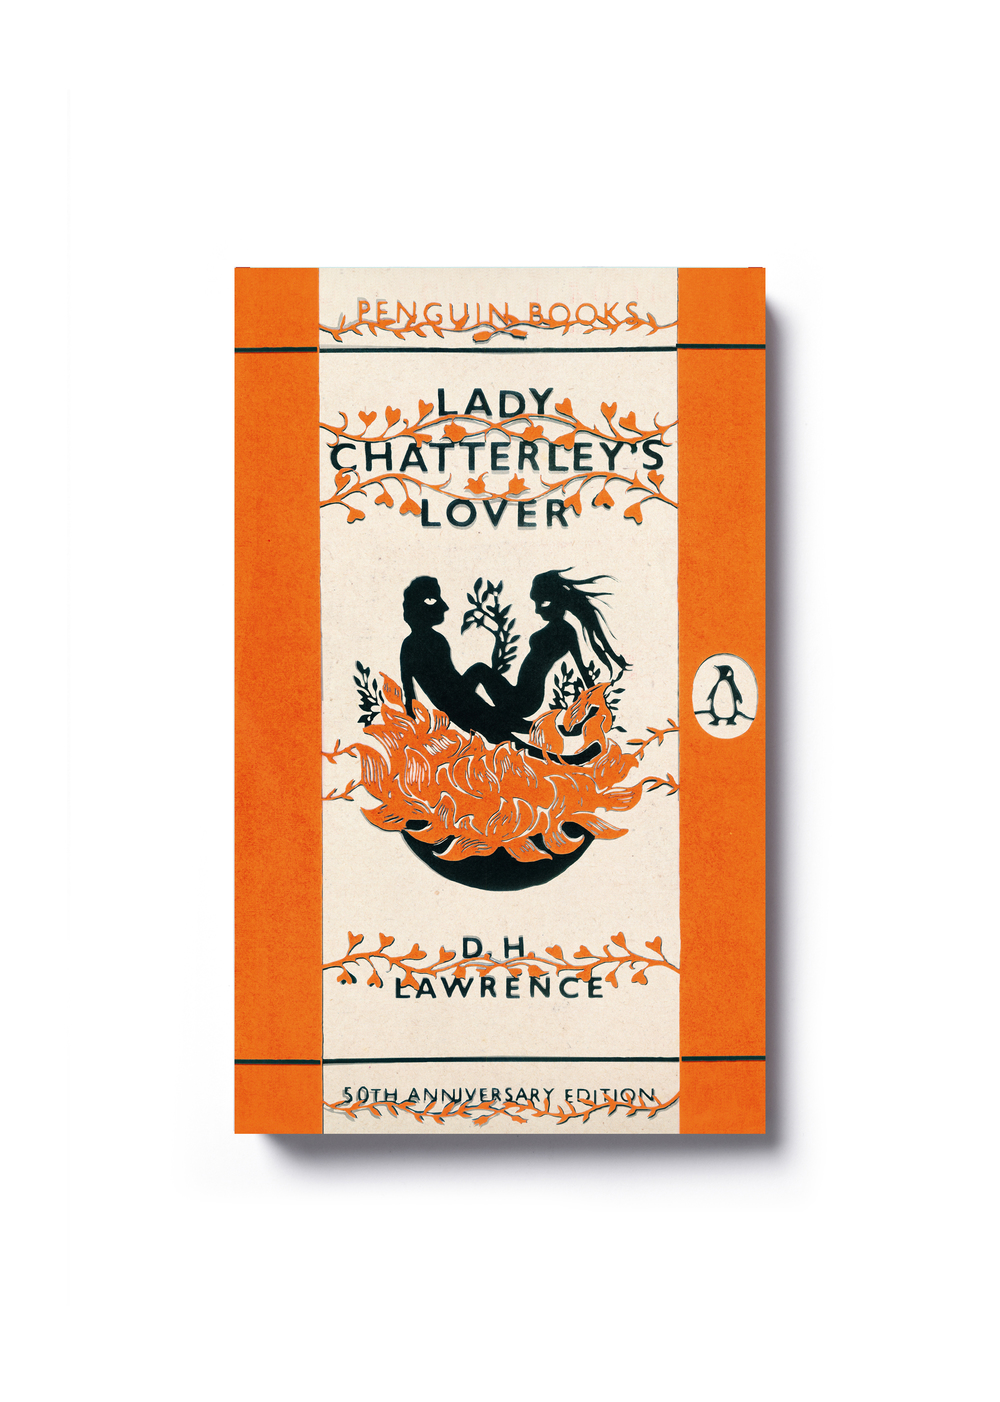 Lady Chatterley's Lover by D. H. Lawrence (60th Anniversary Edition) -  Design by Jim Stoddart